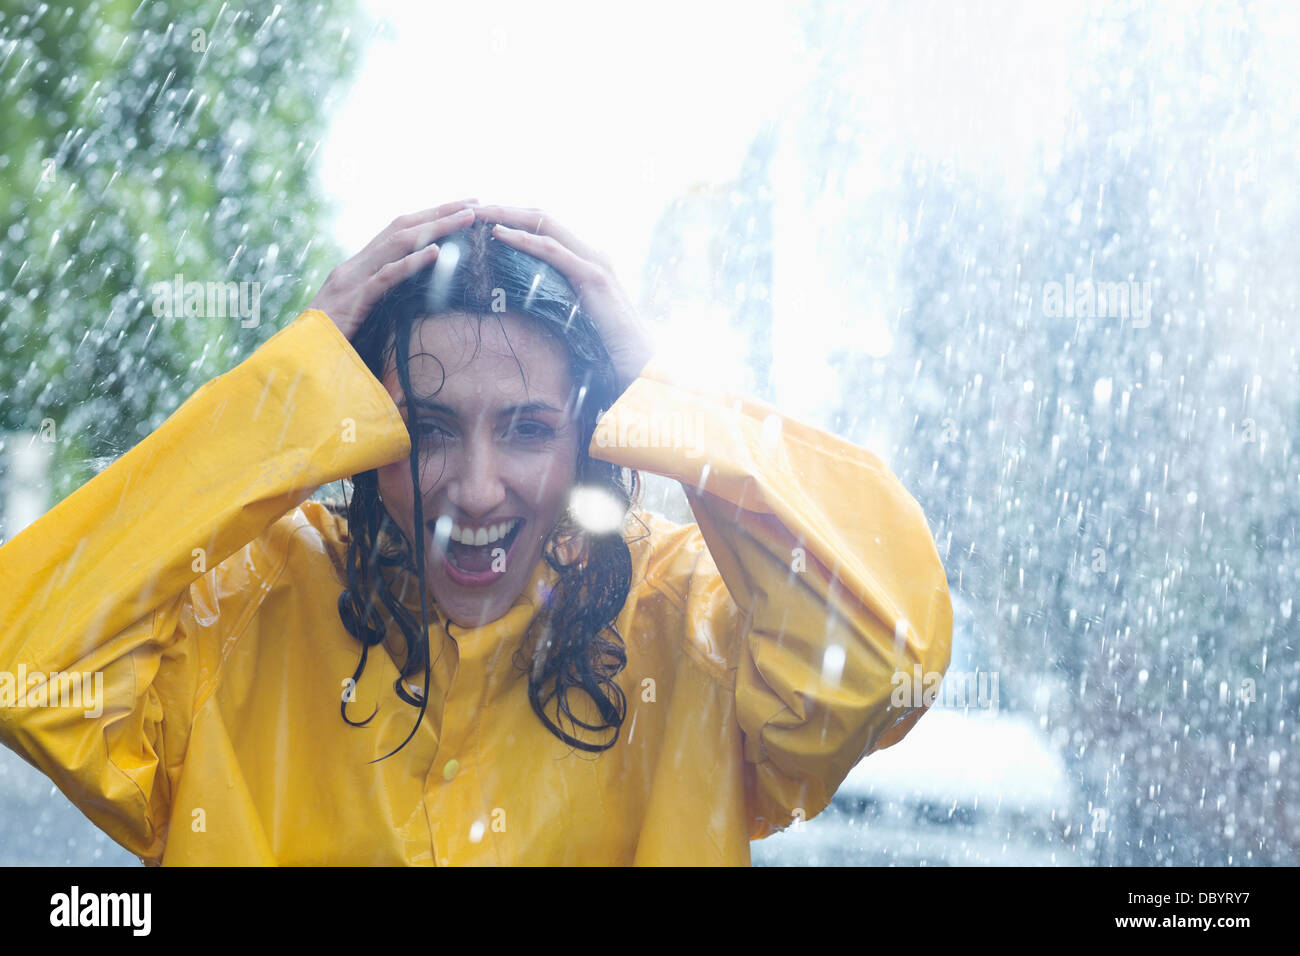 Happy woman with hands on head in rain - Stock Image